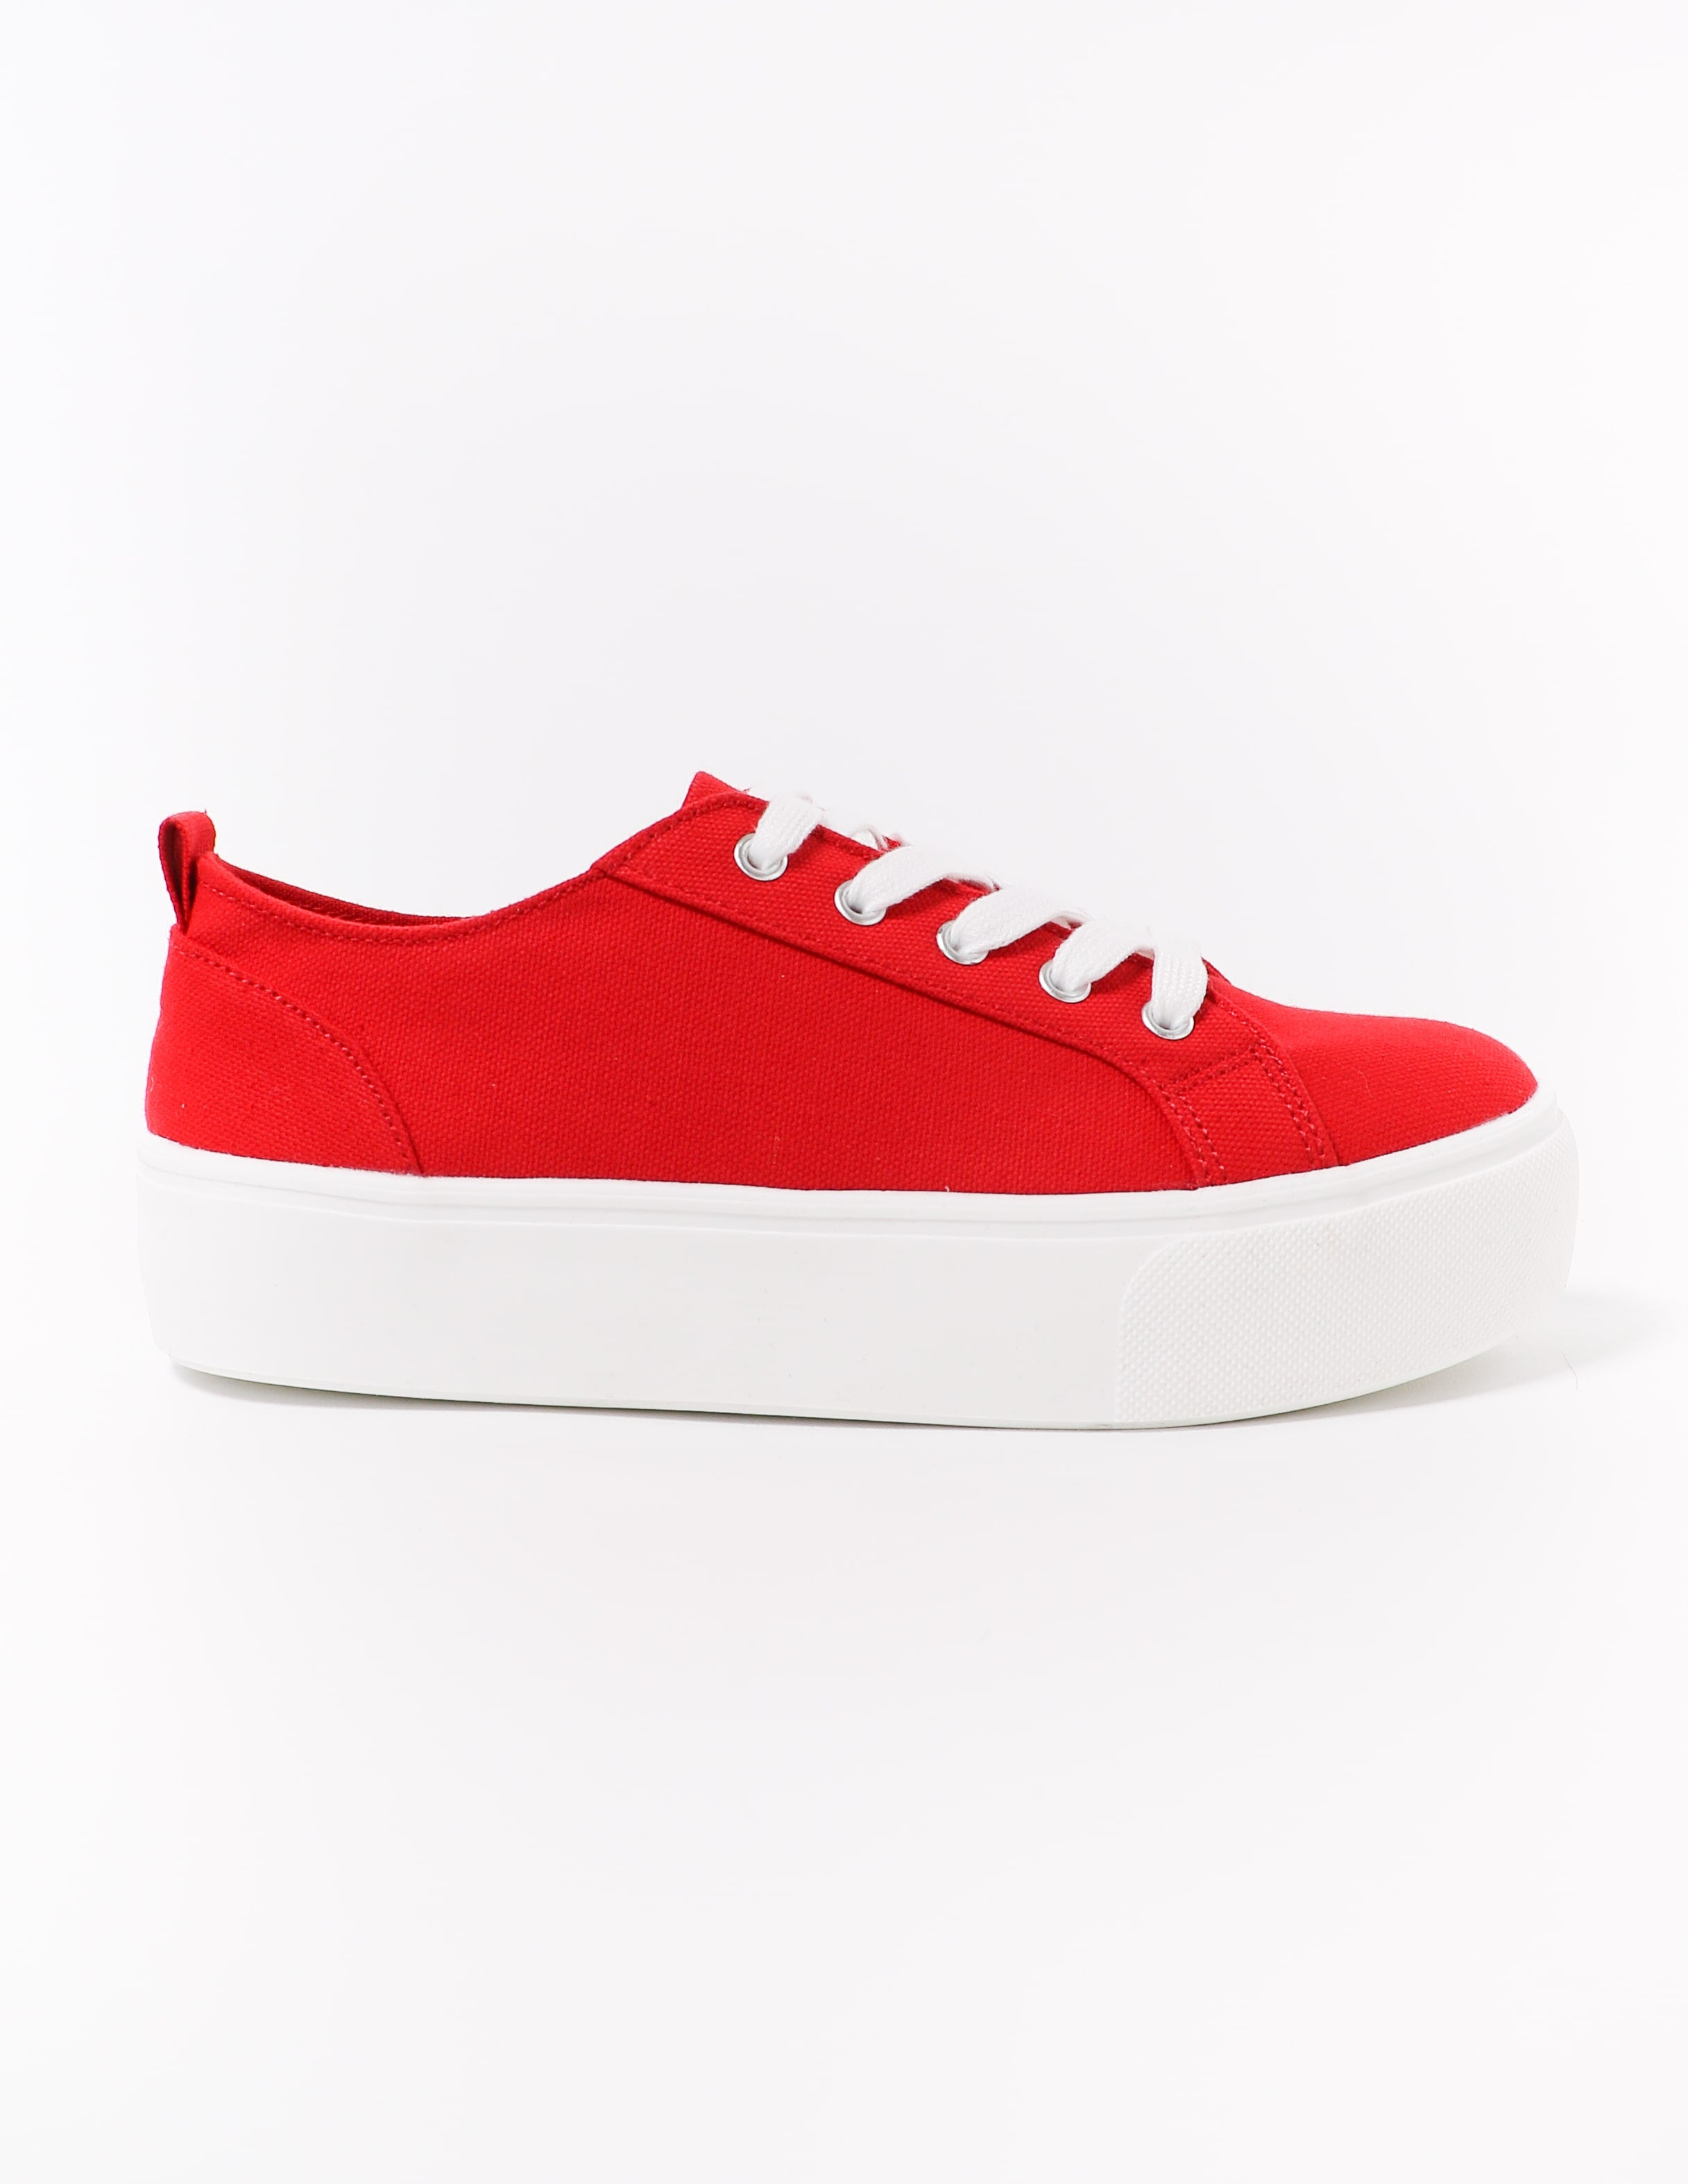 side of the red canvas lace take it slow sneaker - elle bleu shoes